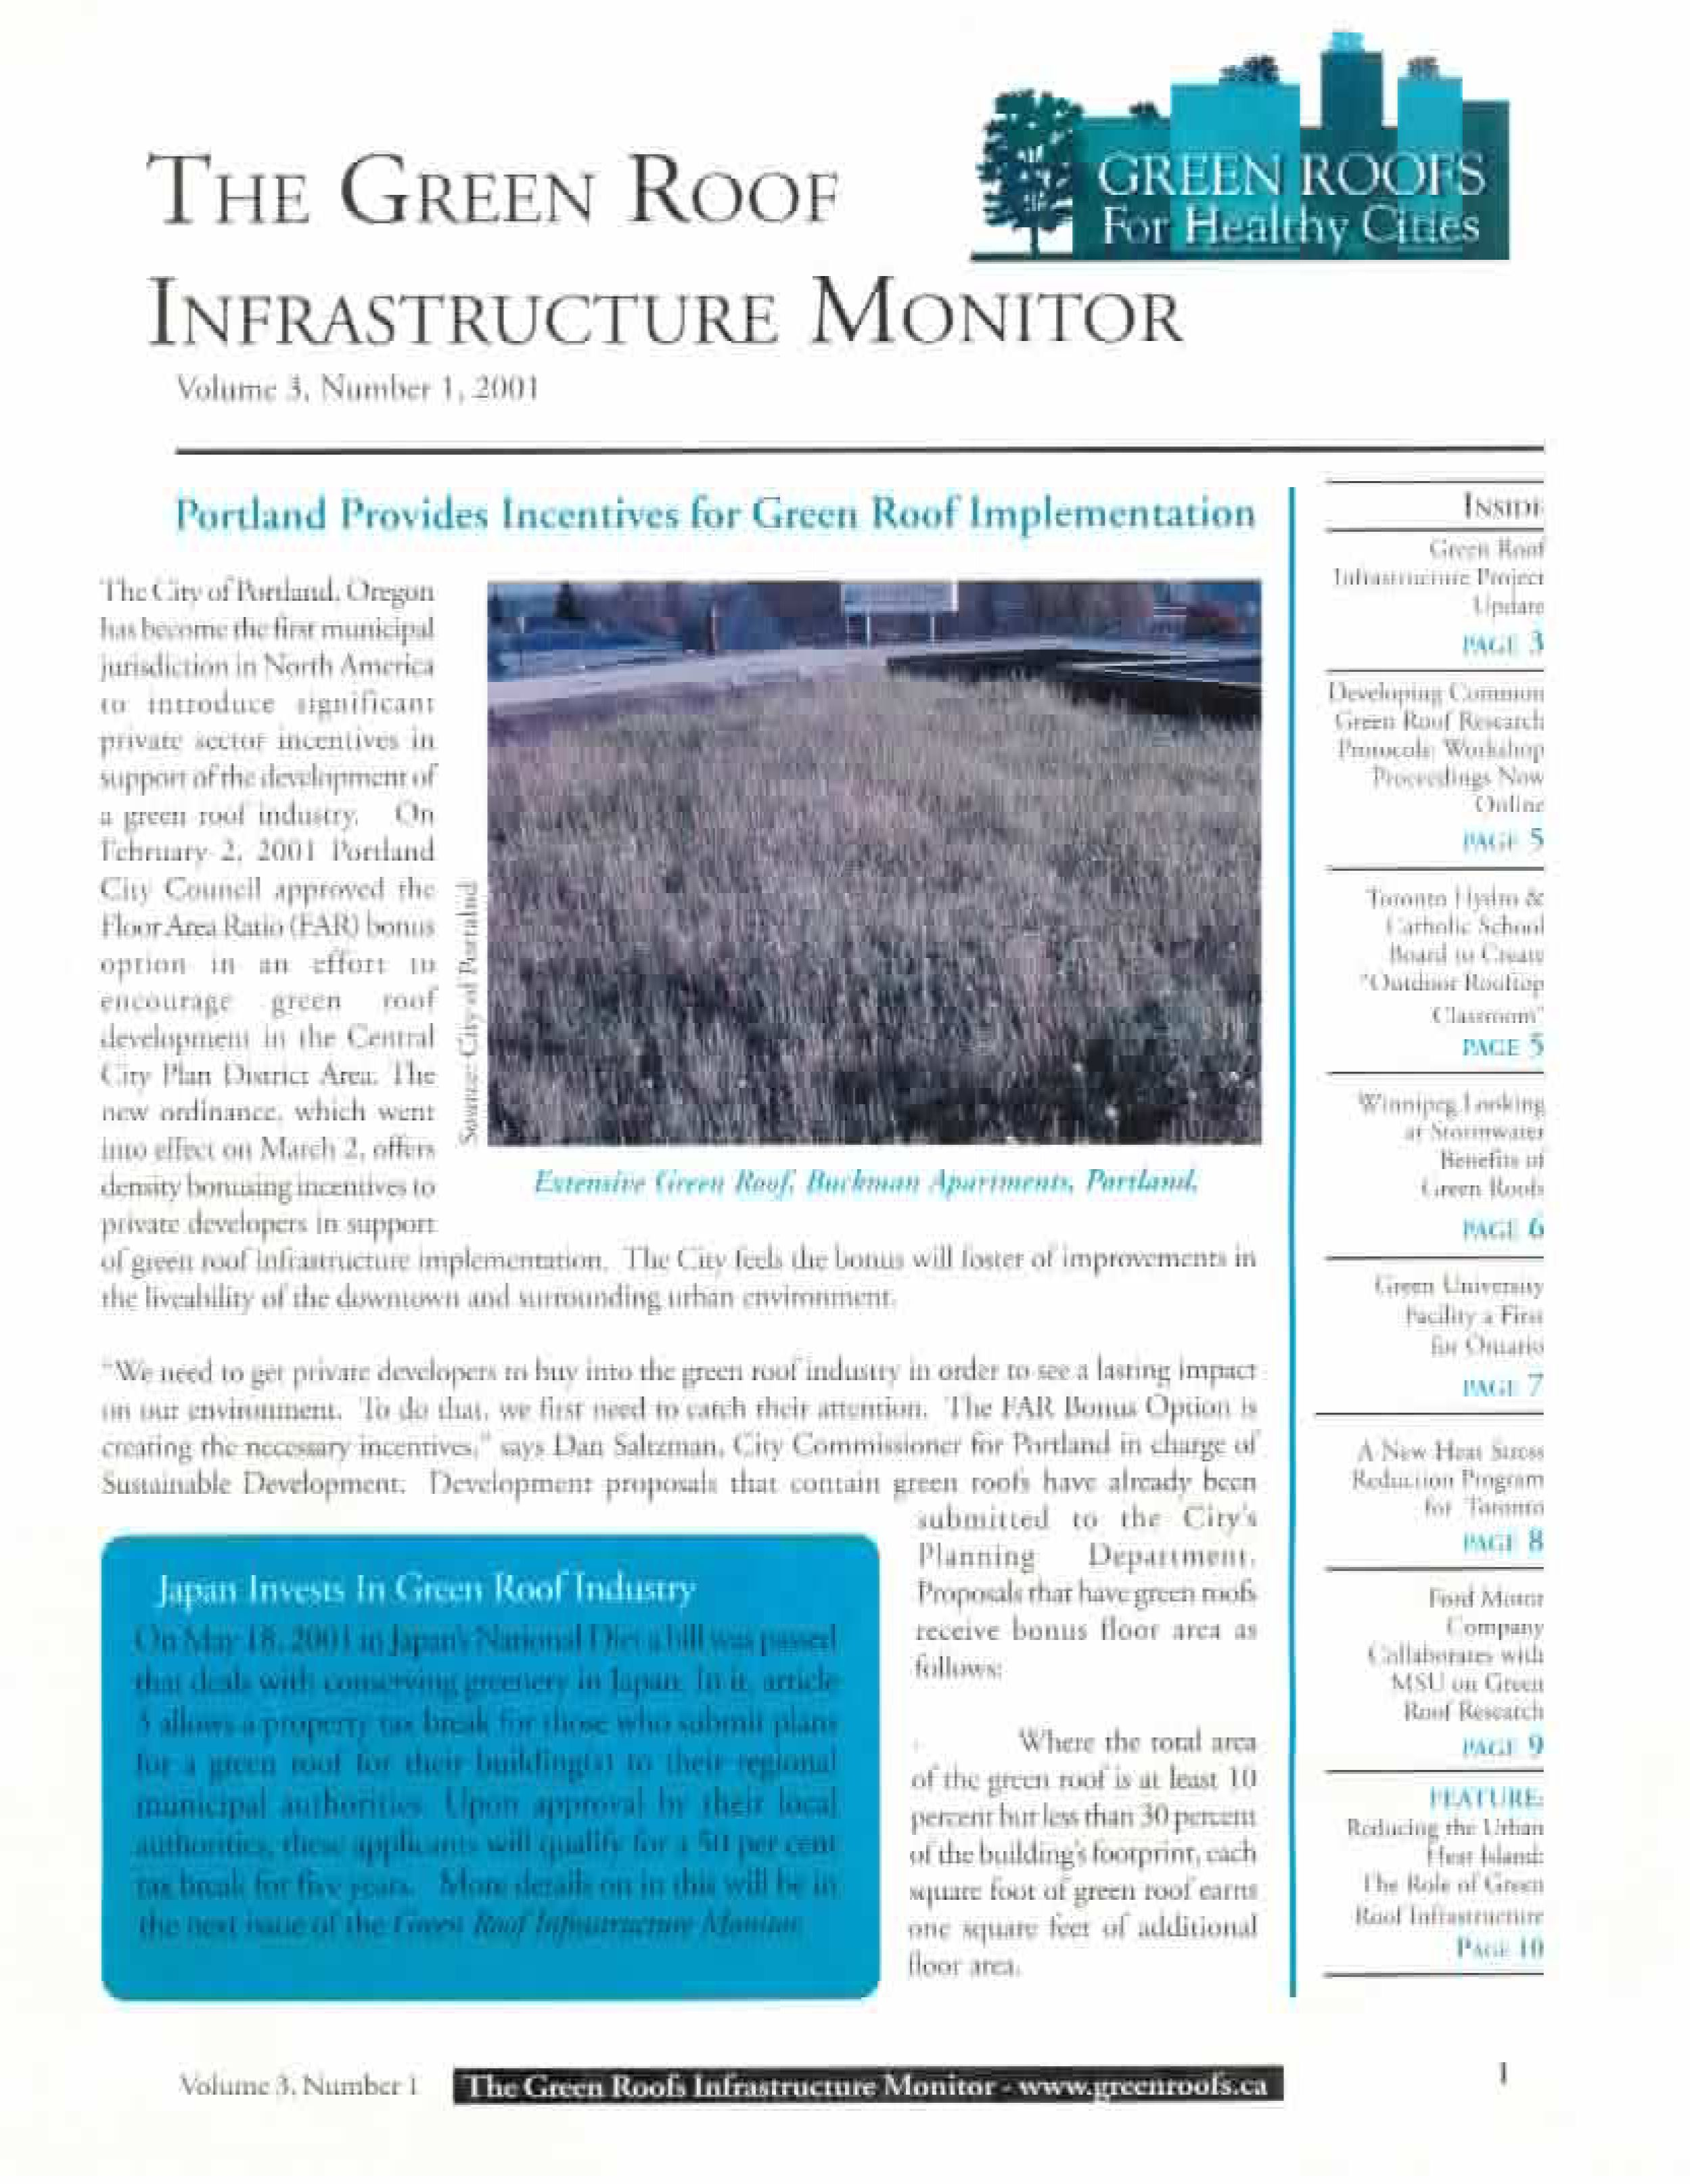 Vol 3 No 1 The Green Roof Infrastructure Monitor Architecture Eco Ecotecture Nature Green Sustainable Green Architecture Urban Agriculture Urban Farming